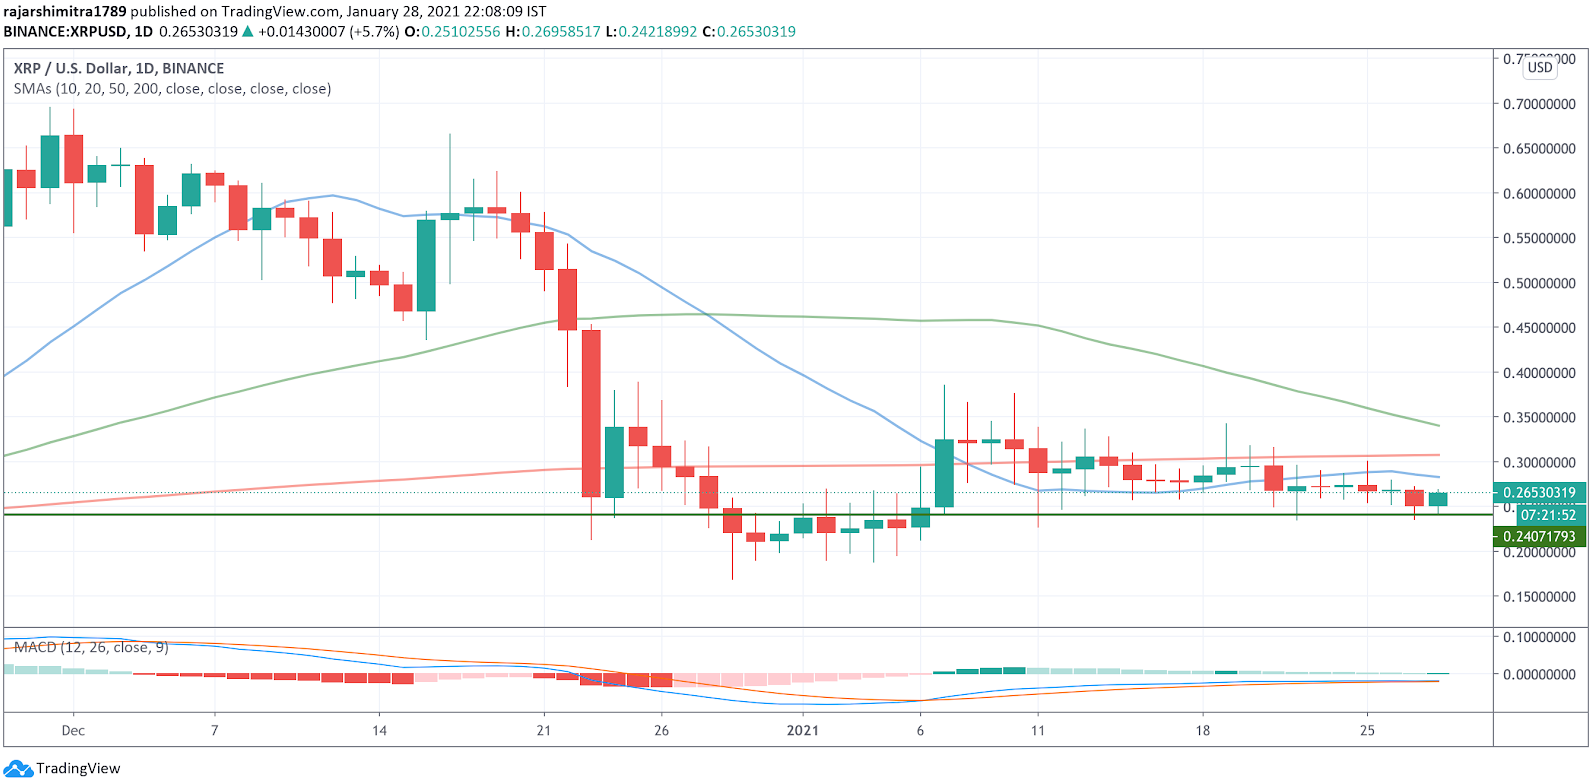 xrp/usd daily chart 012921